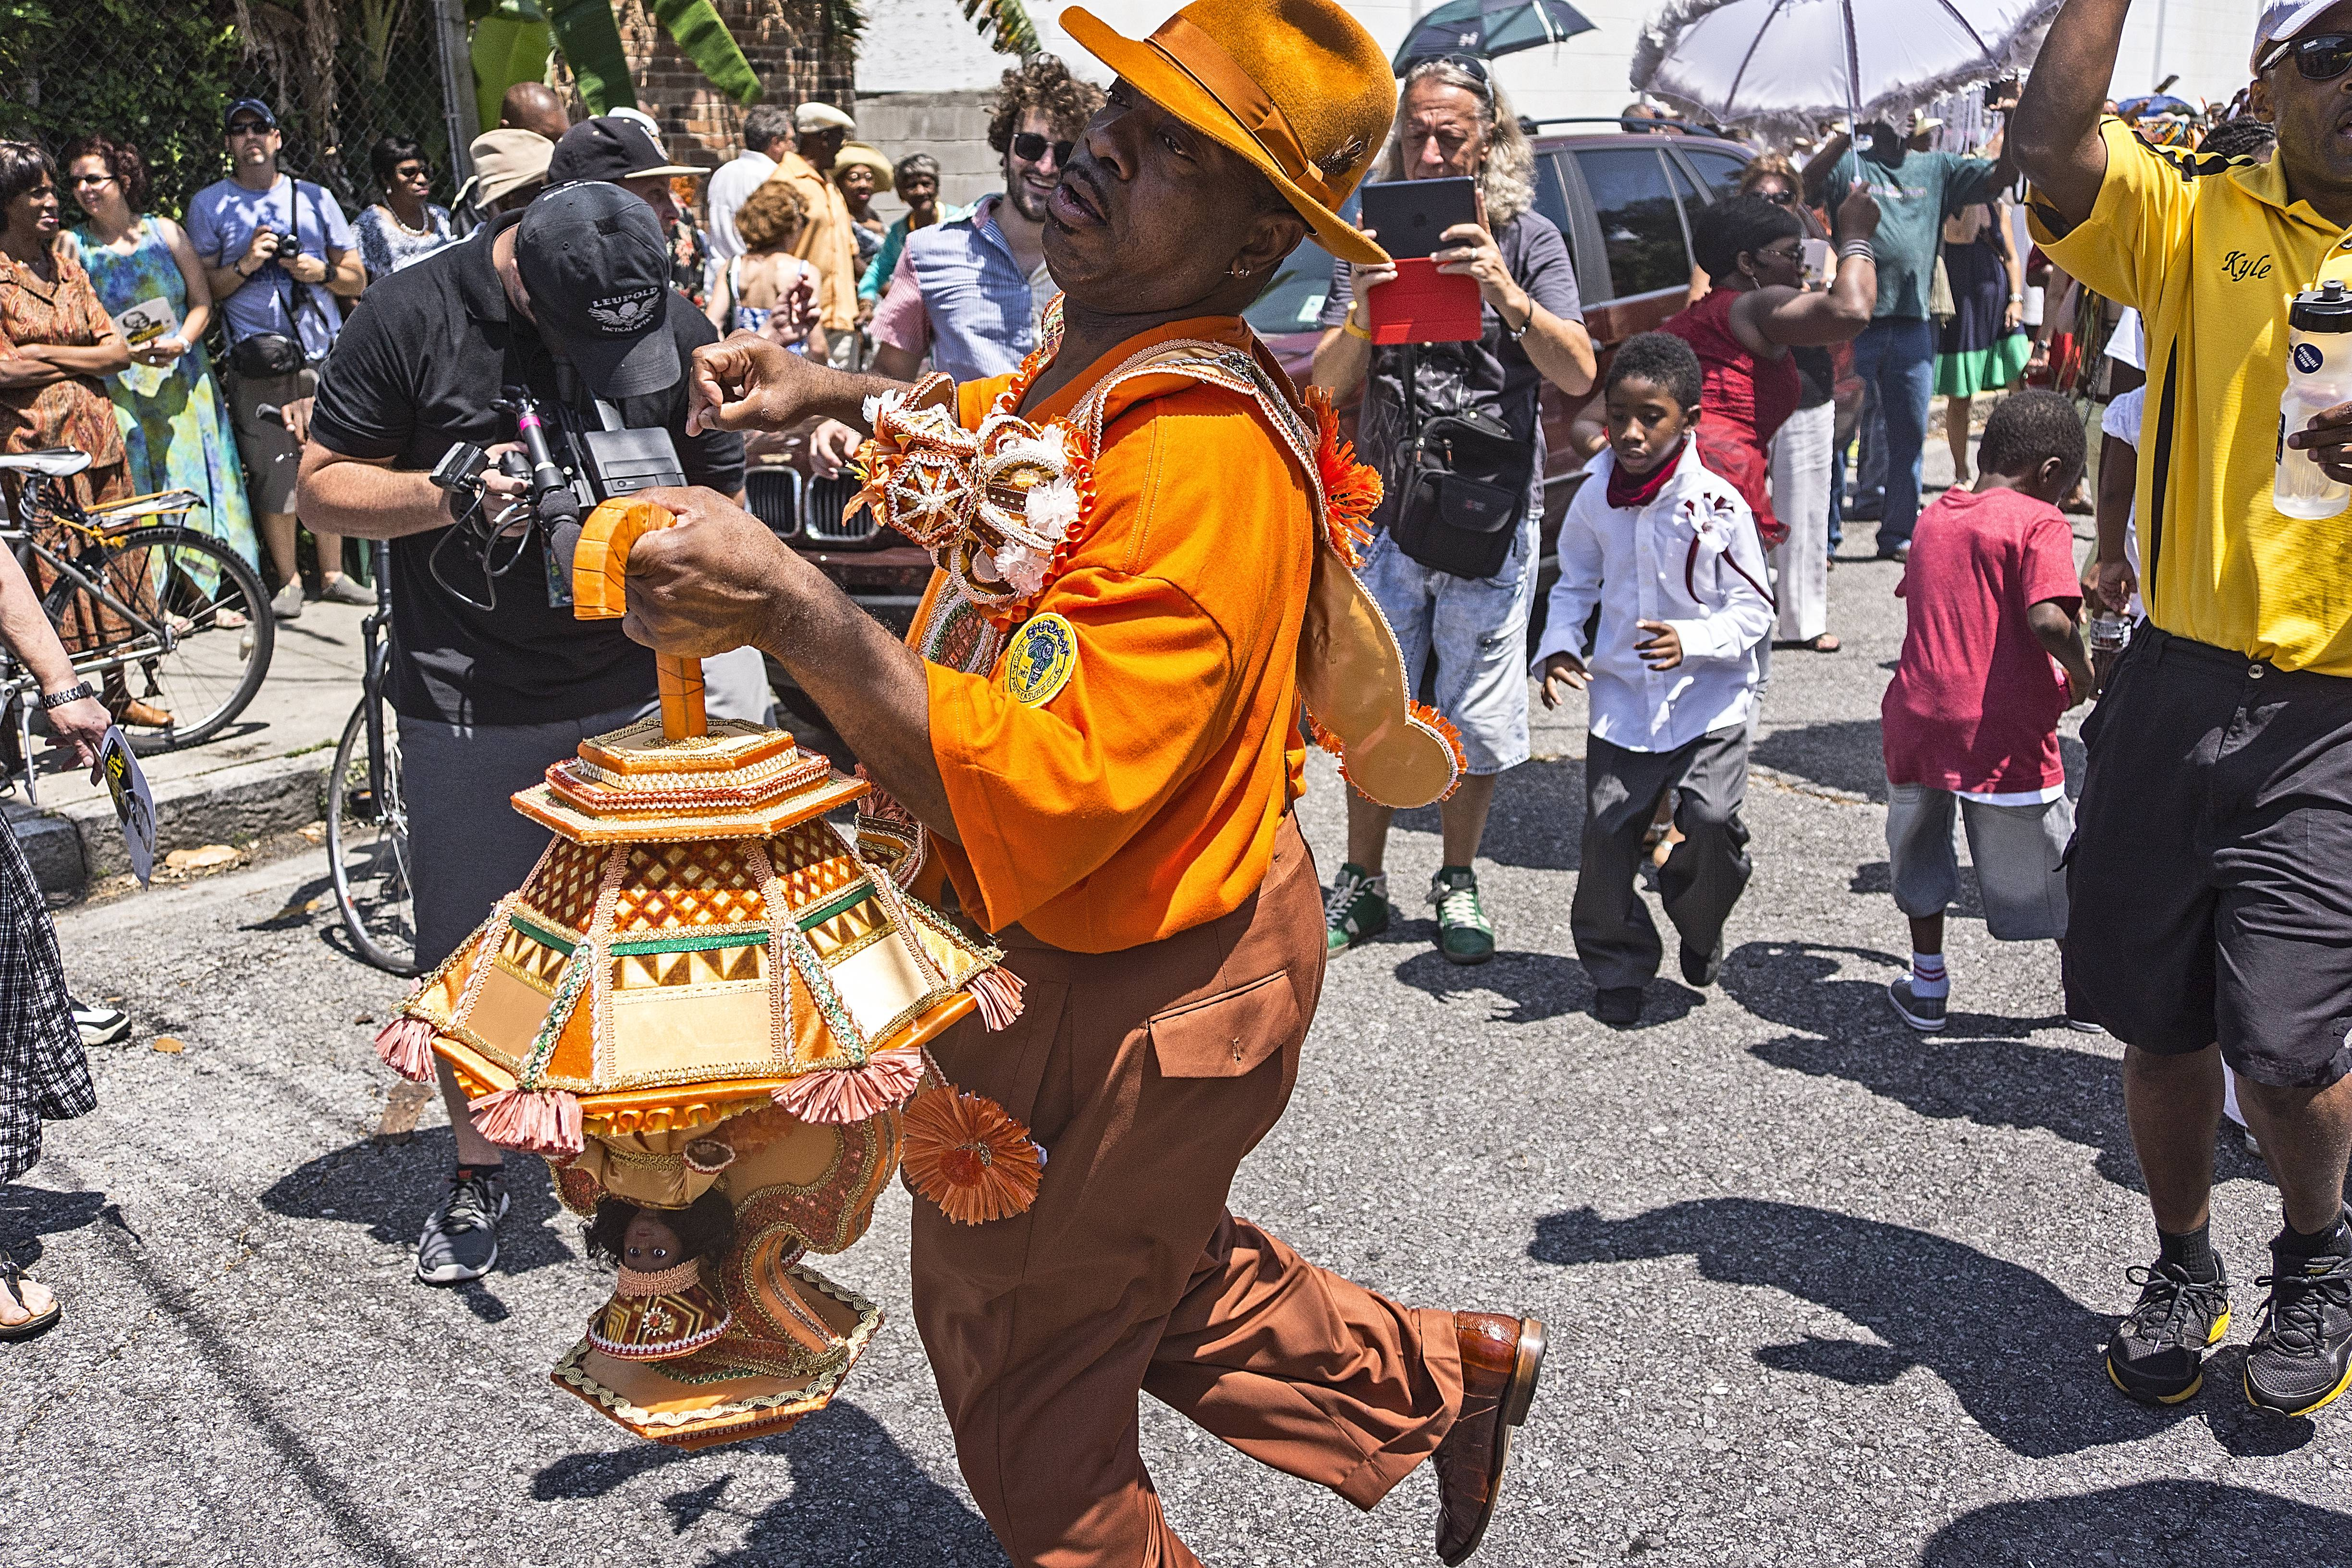 The dancing begins at The Stachmo second line parade.